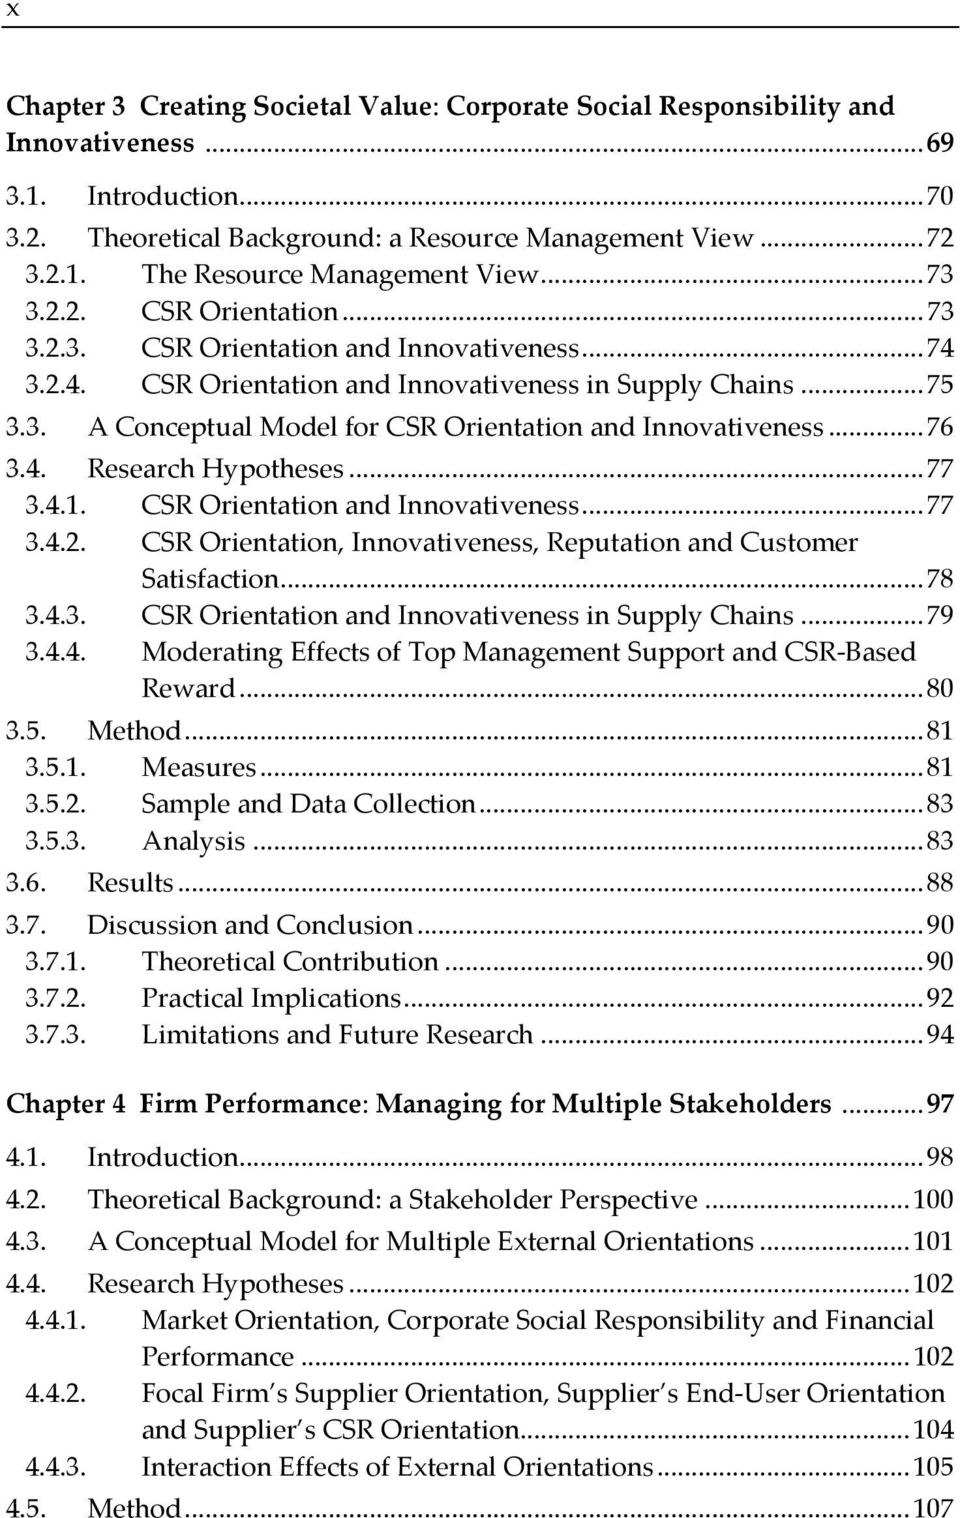 .. 76 3.4. Research Hypotheses... 77 3.4.1. CSR Orientation and Innovativeness... 77 3.4.2. CSR Orientation, Innovativeness, Reputation and Customer Satisfaction... 78 3.4.3. CSR Orientation and Innovativeness in Supply Chains.